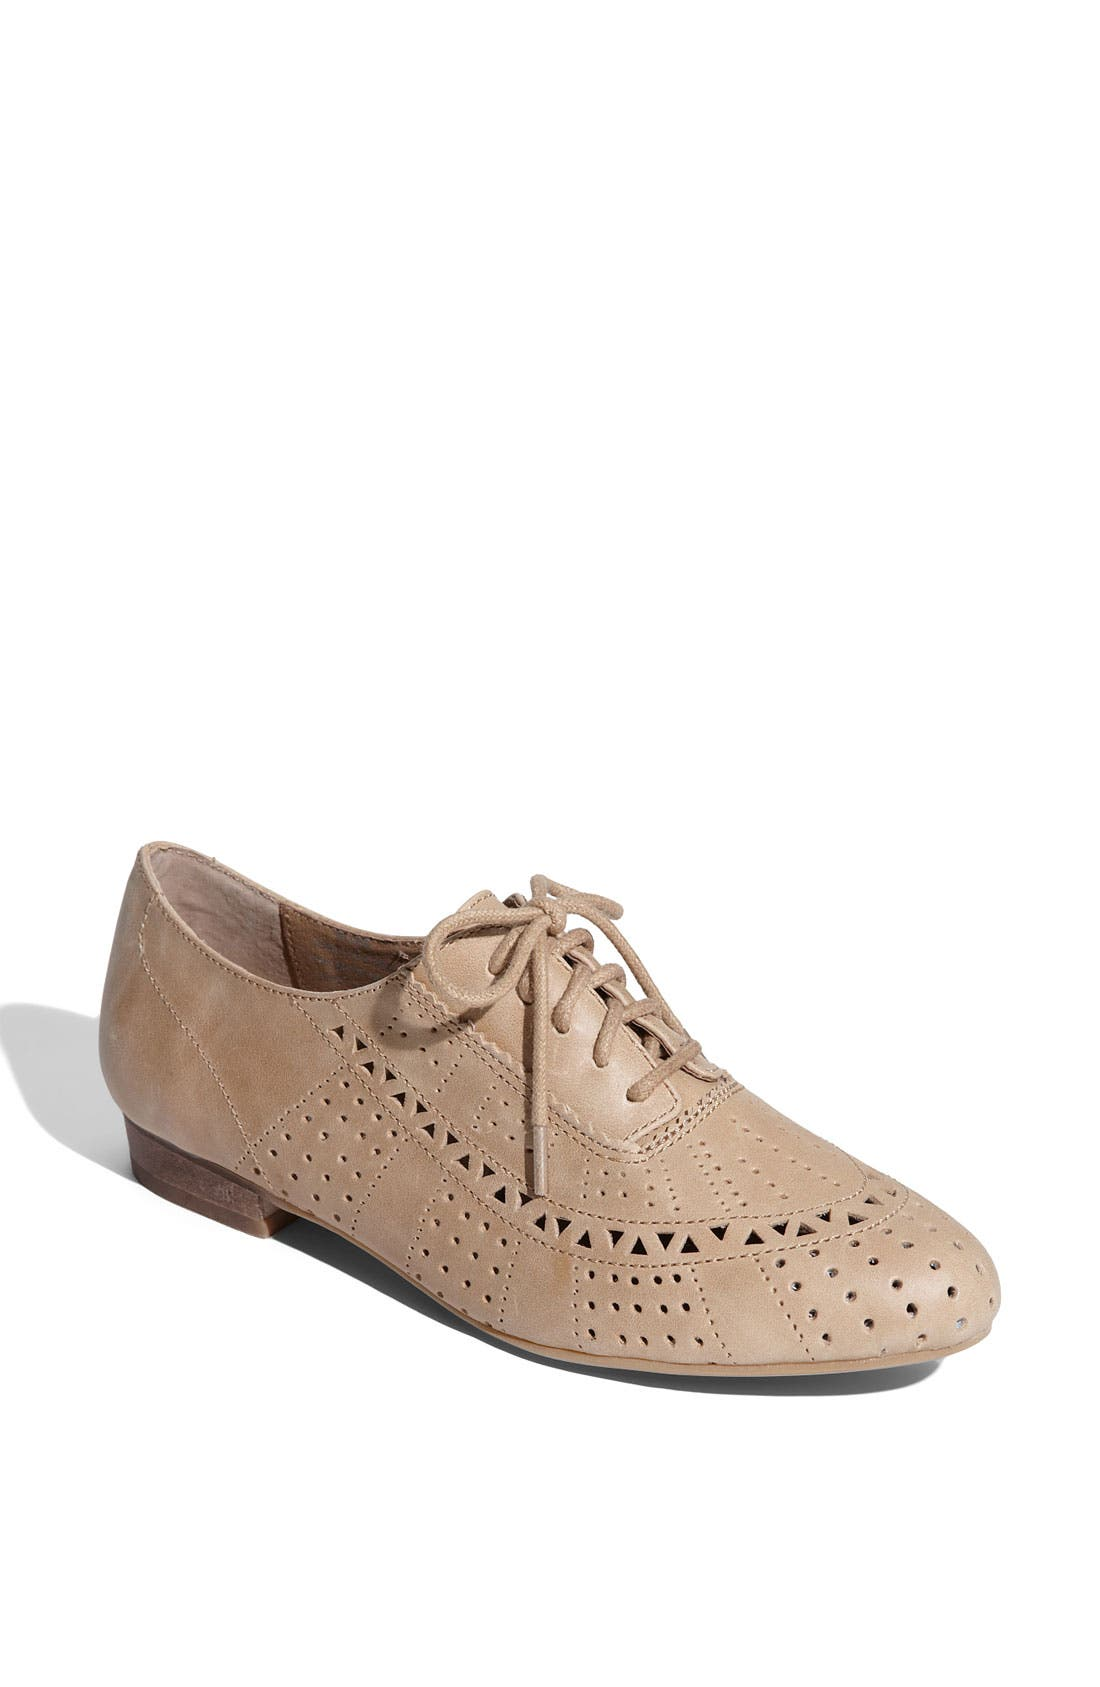 Main Image - Jeffrey Campbell 'Miller' Oxford